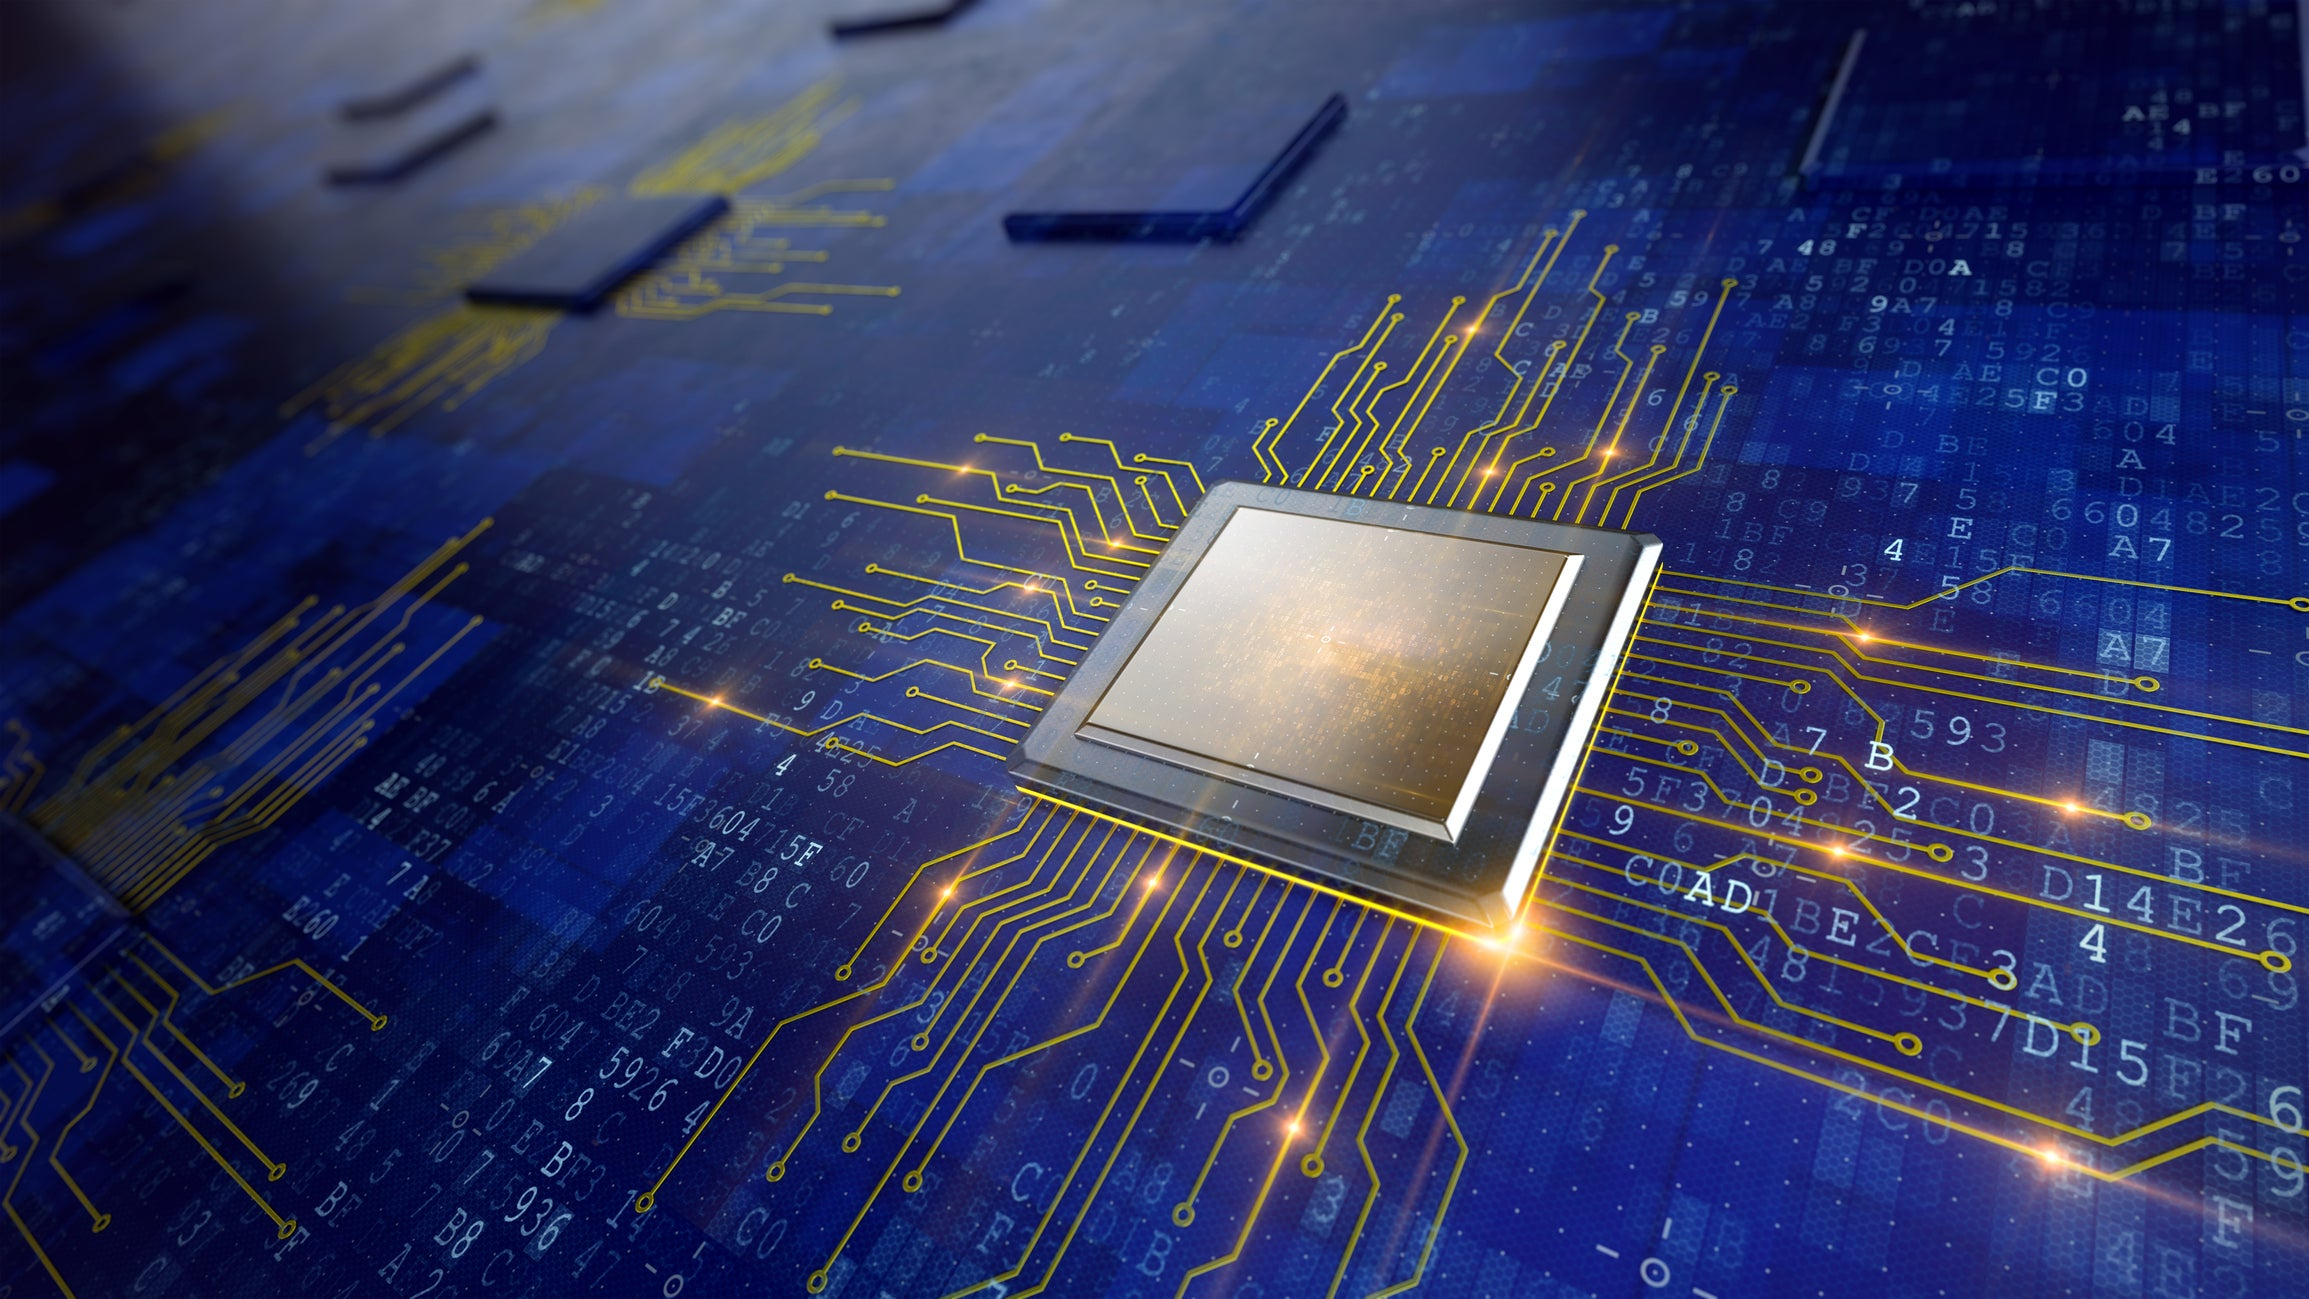 Why Advanced Micro Devices Stock Is Lighting Up - Motley Fool